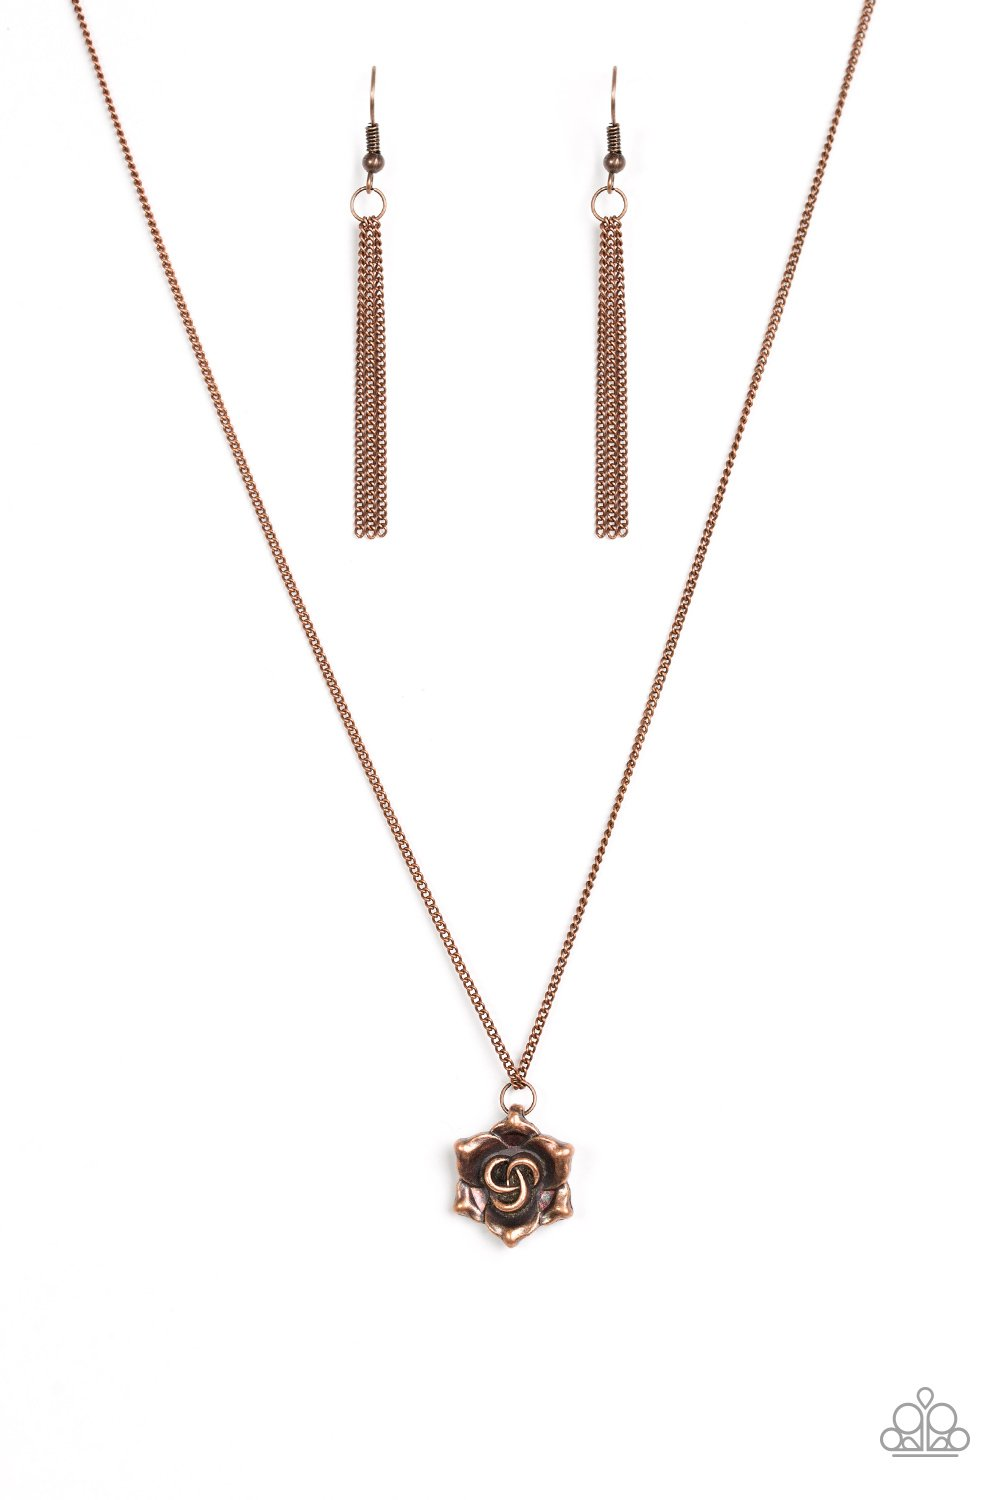 Paparazzi Accessories ~ Primrose Path - Copper